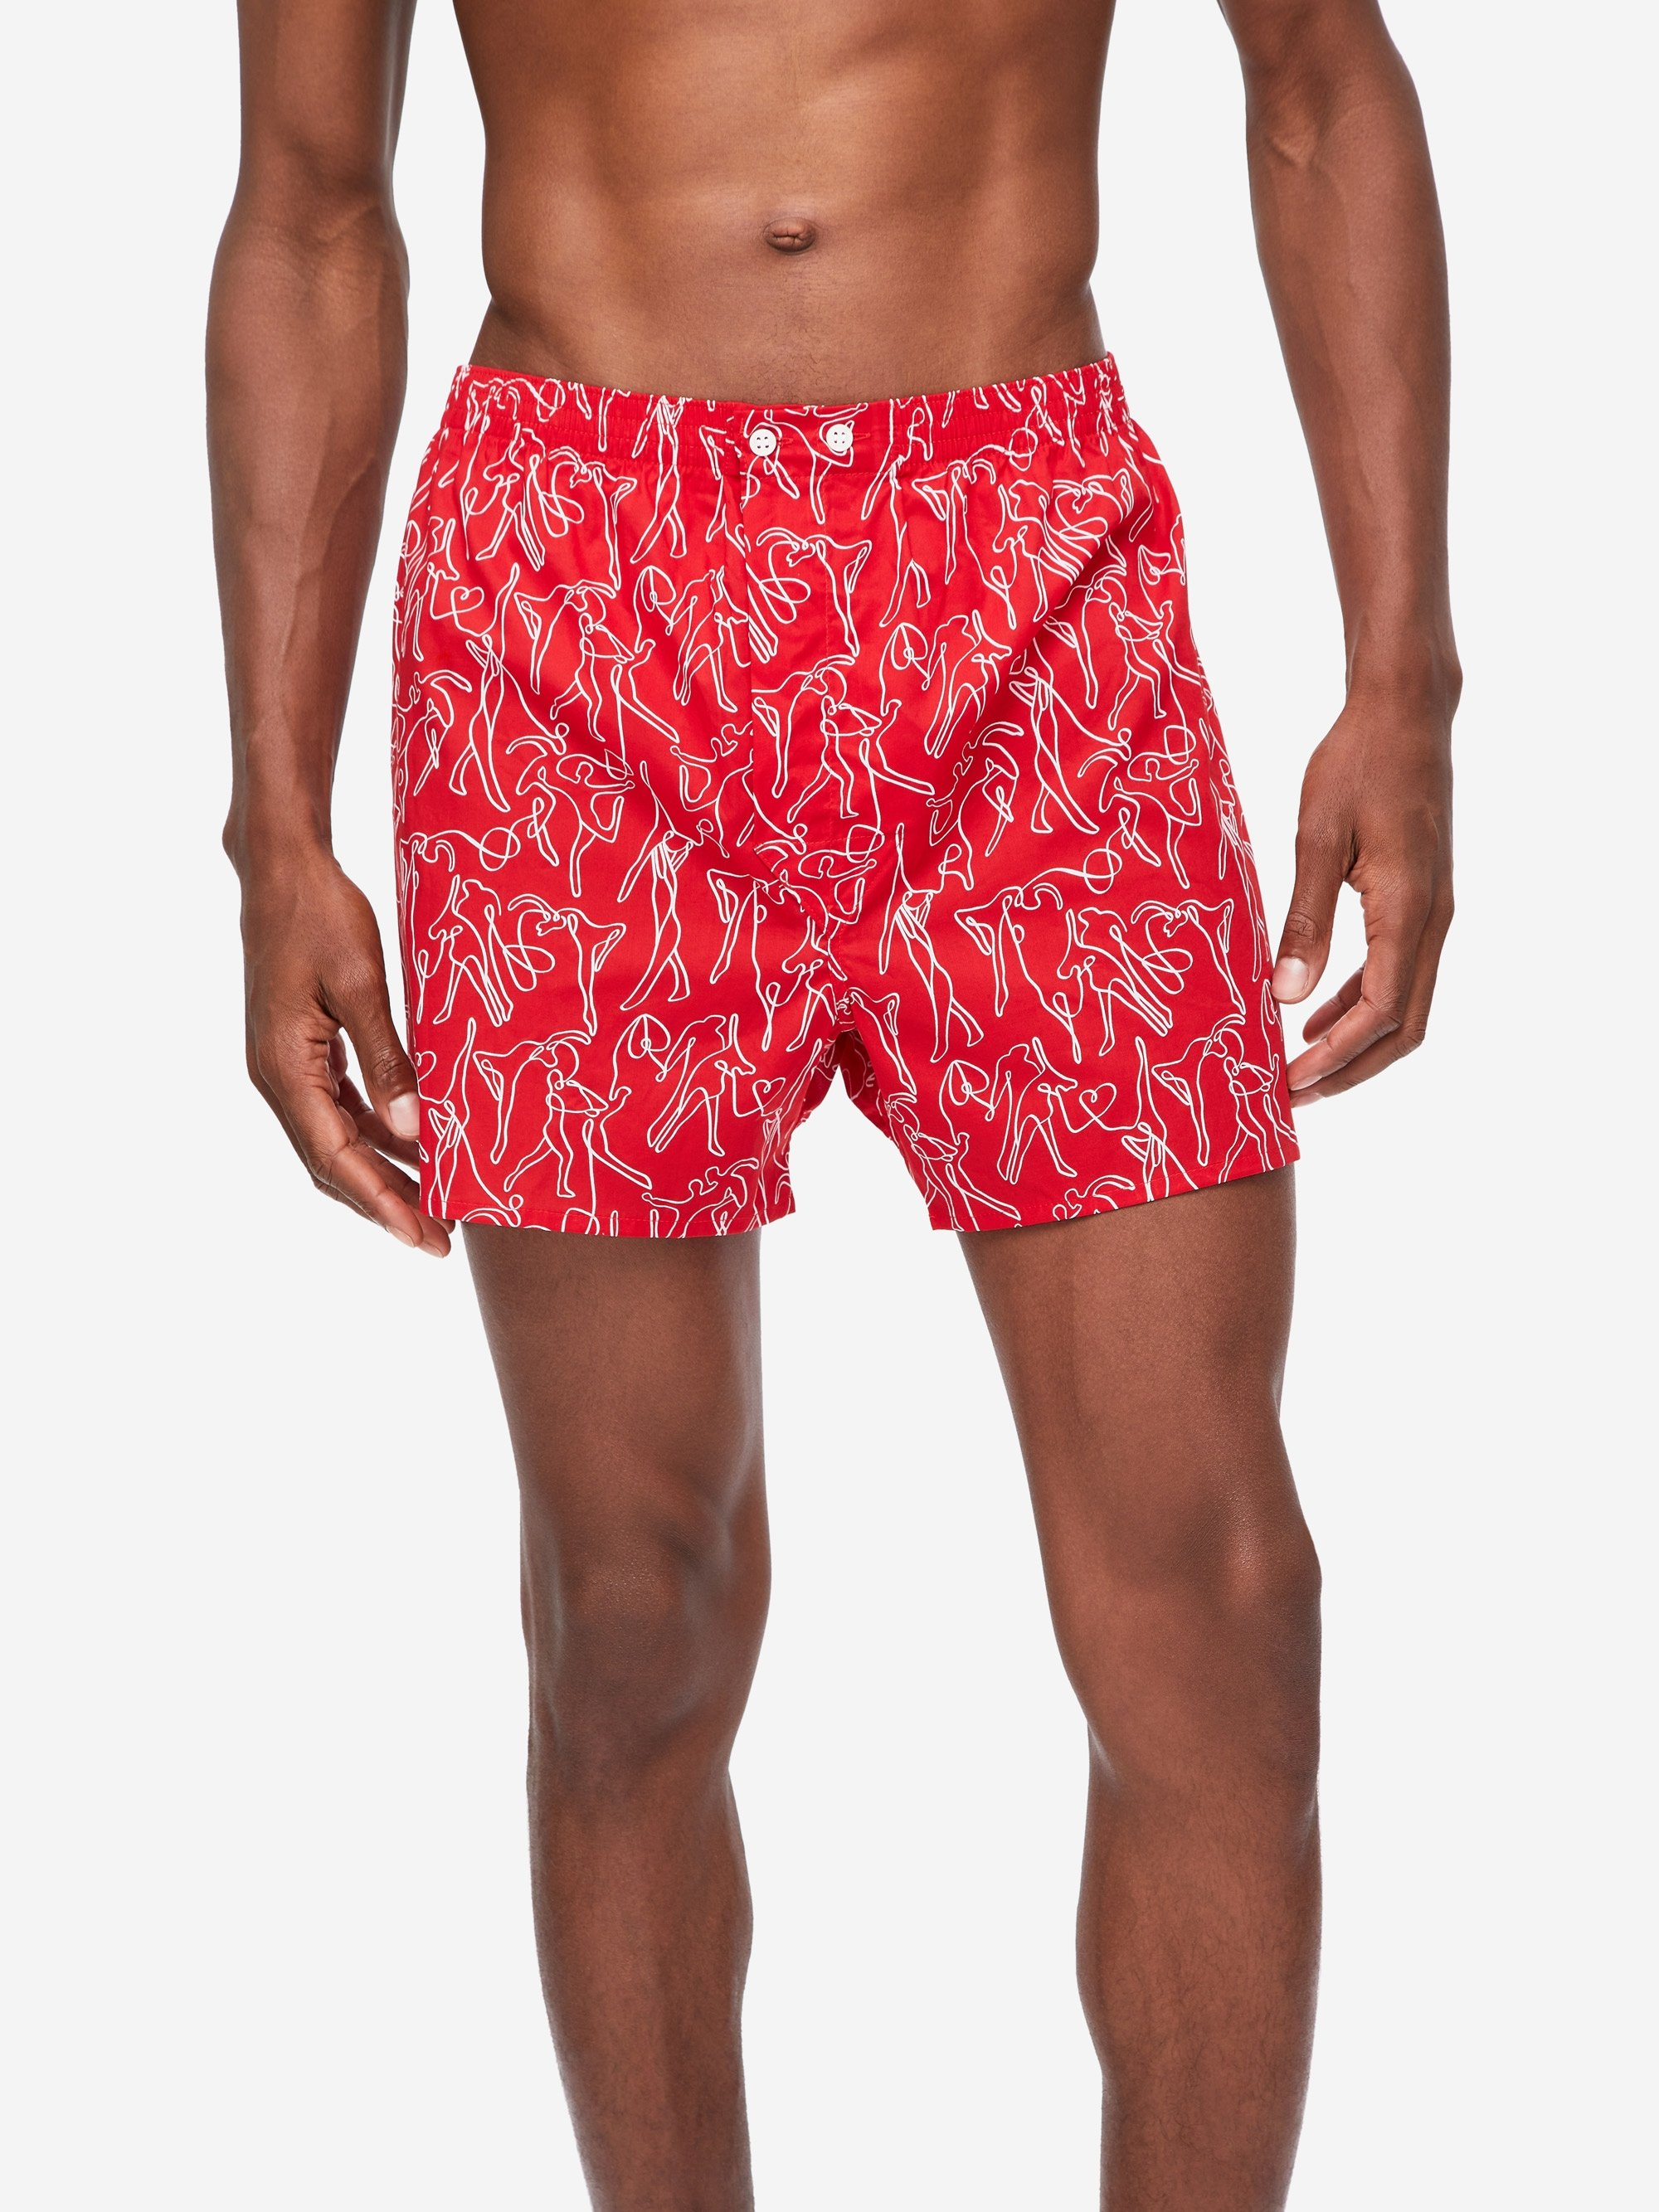 Men's Classic Fit Boxer Shorts Nelson 76 Cotton Batiste Red